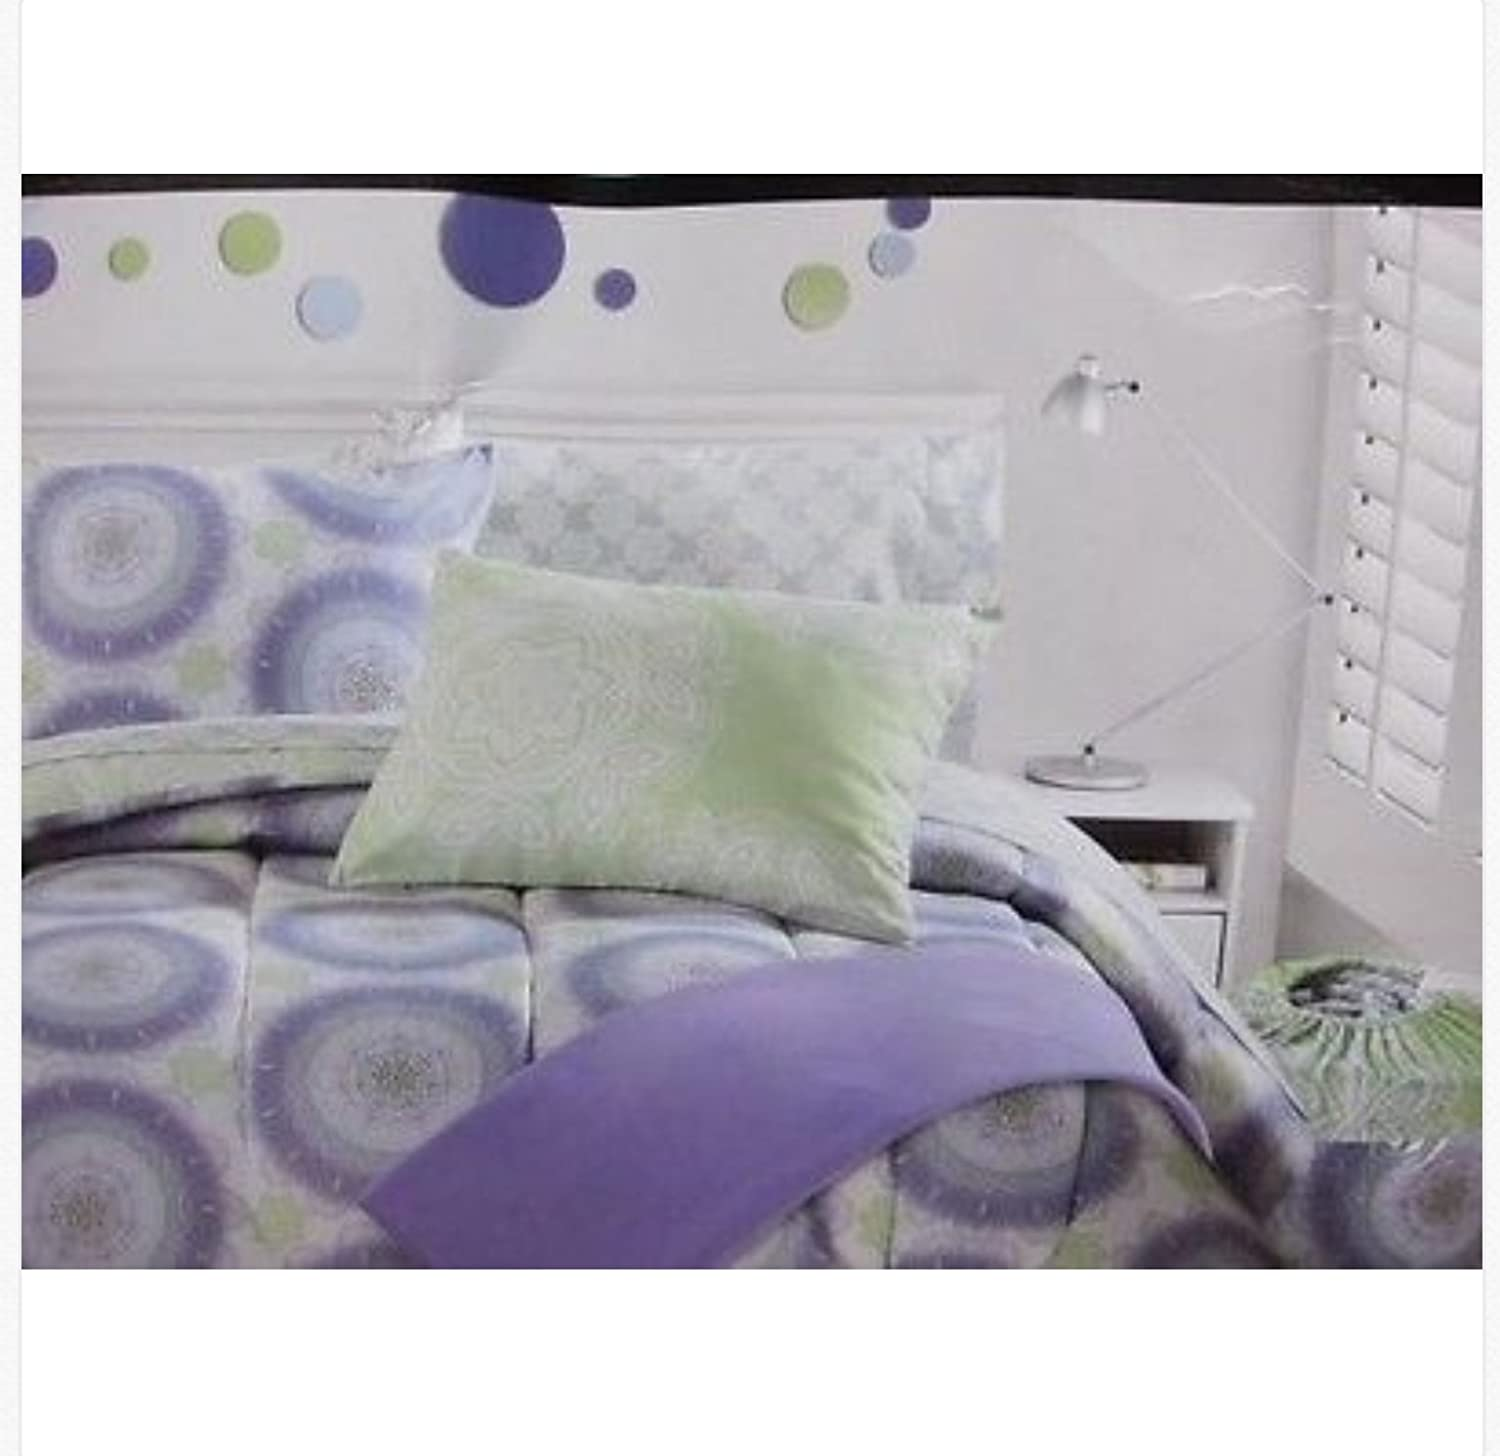 Cynthia Rowley 8 Pc Twin XL Comforter Bedding Set Medallion Purple Green White And a Gray With Laundry Bag Dorm